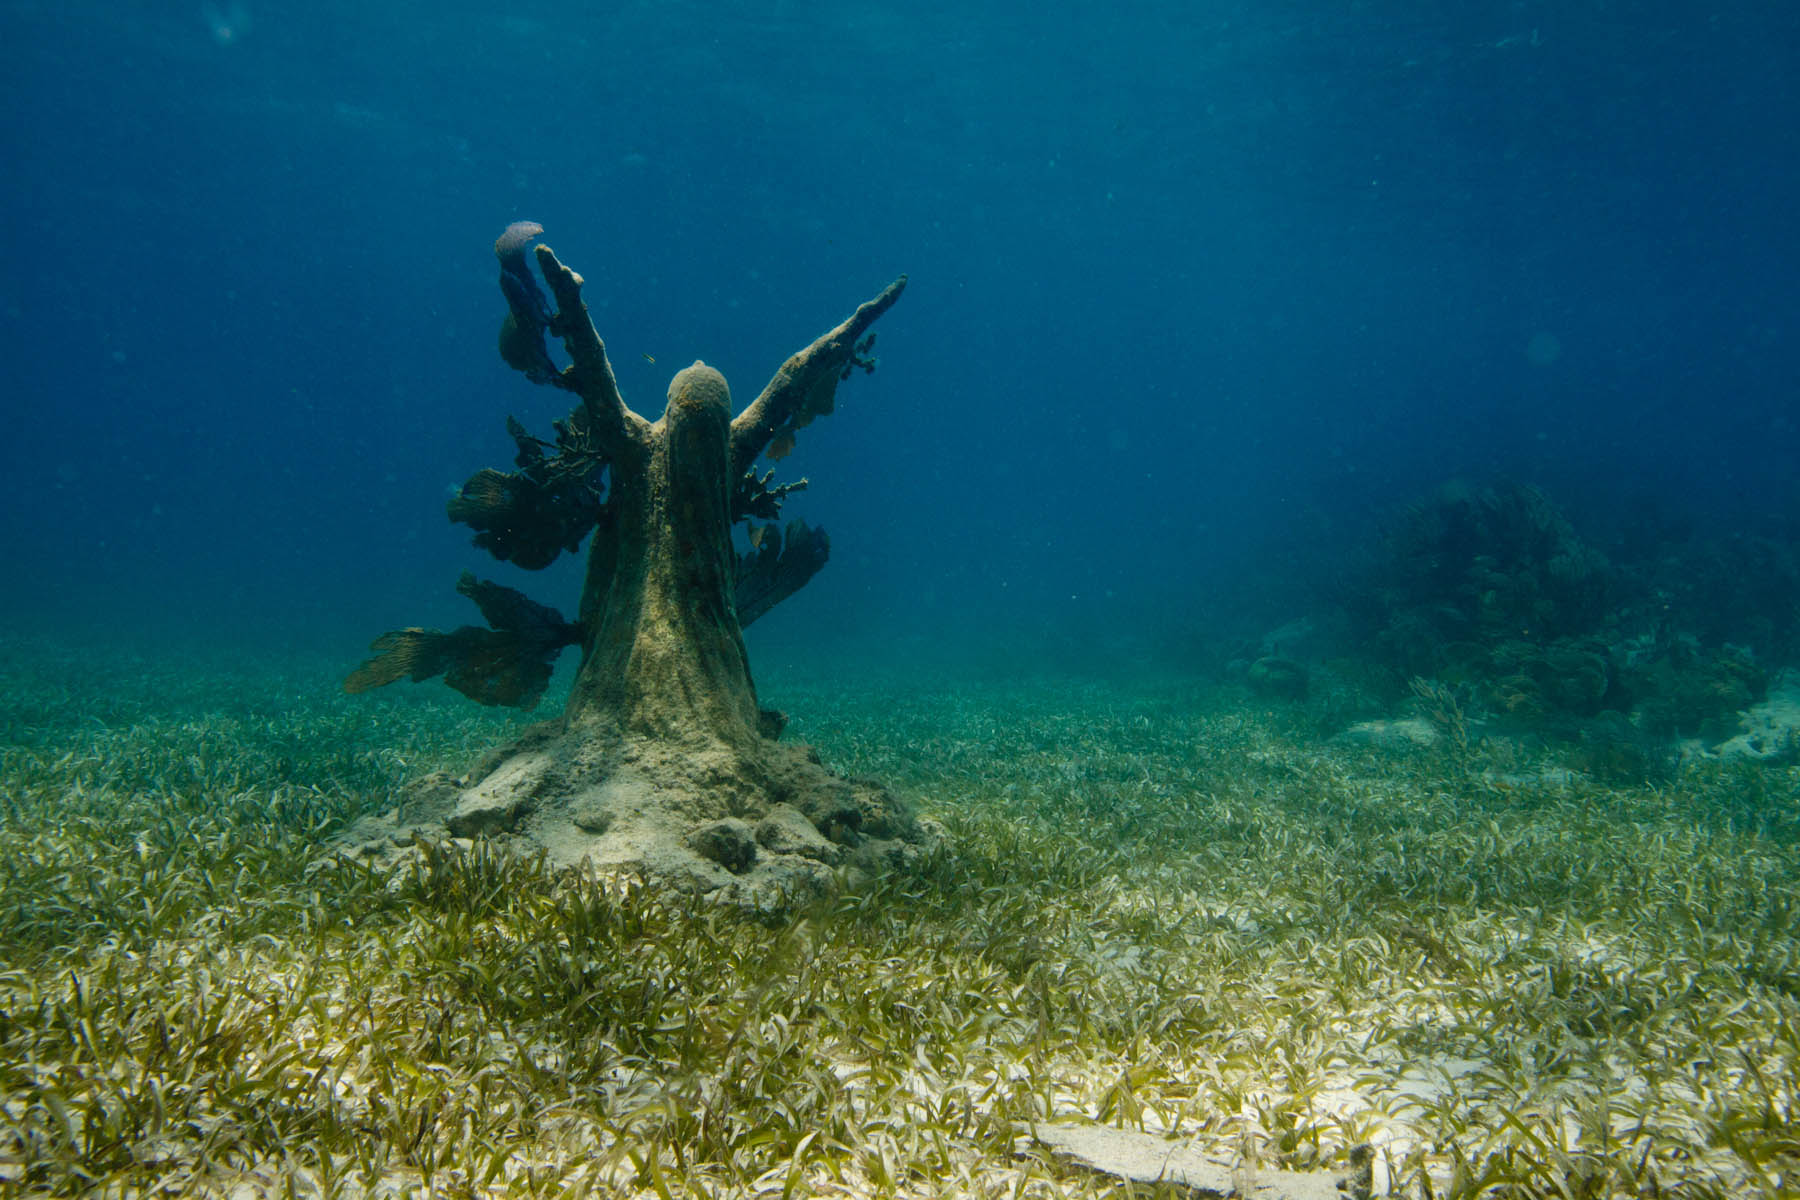 Reclamation-Underwater-Sculpture-Jason-DeCaires-Taylor-Reclamation